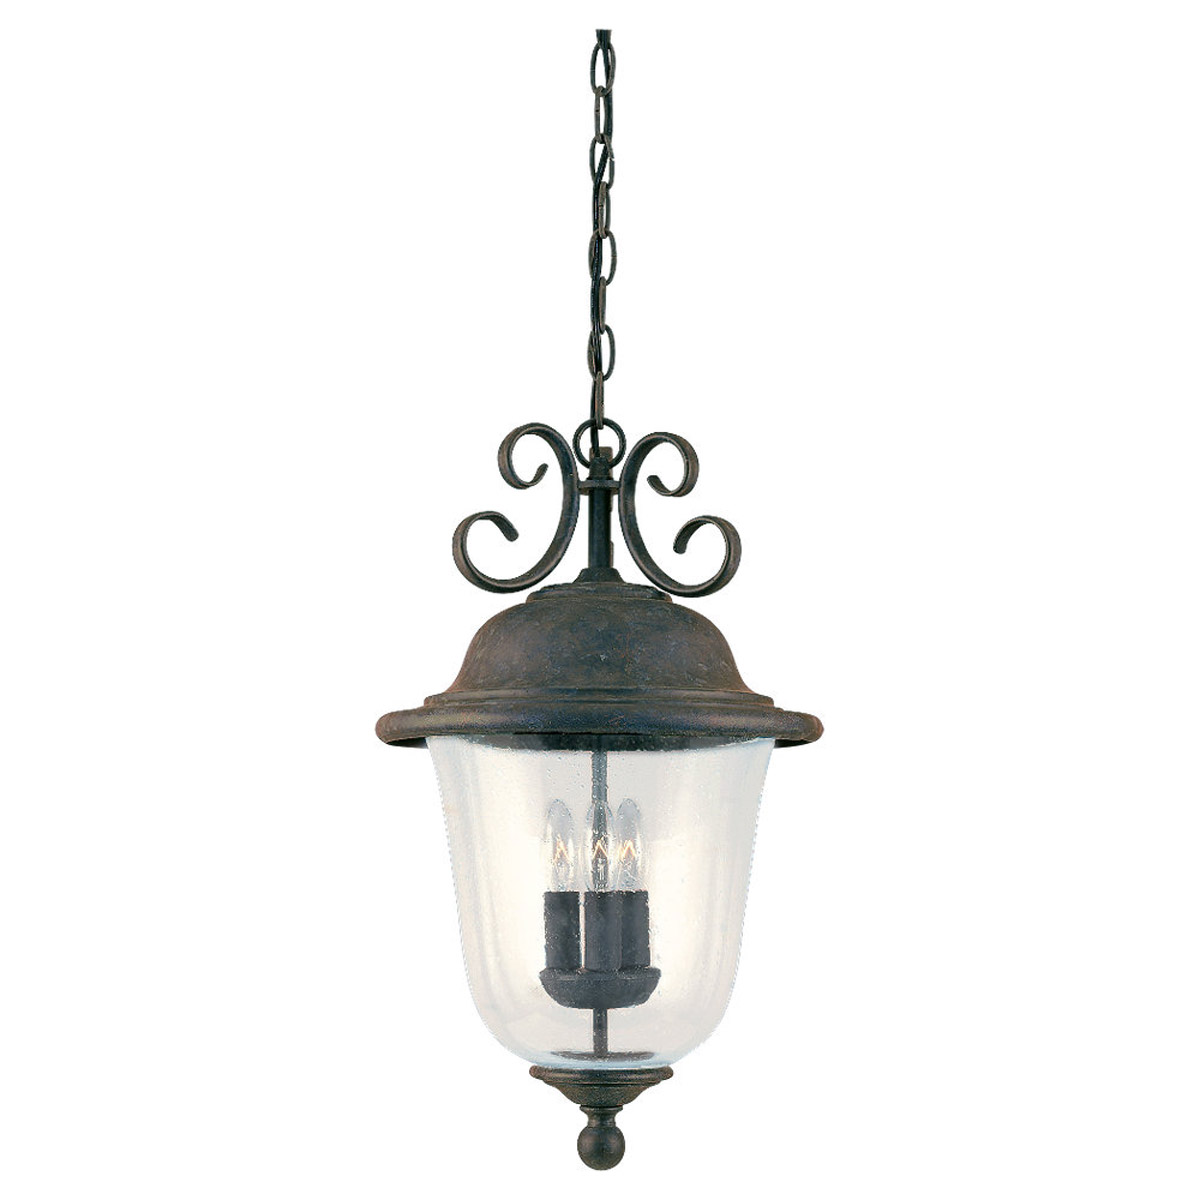 Sea Gull Lighting Trafalgar 3 Light Outdoor Pendant in Oxidized Bronze 6059-46